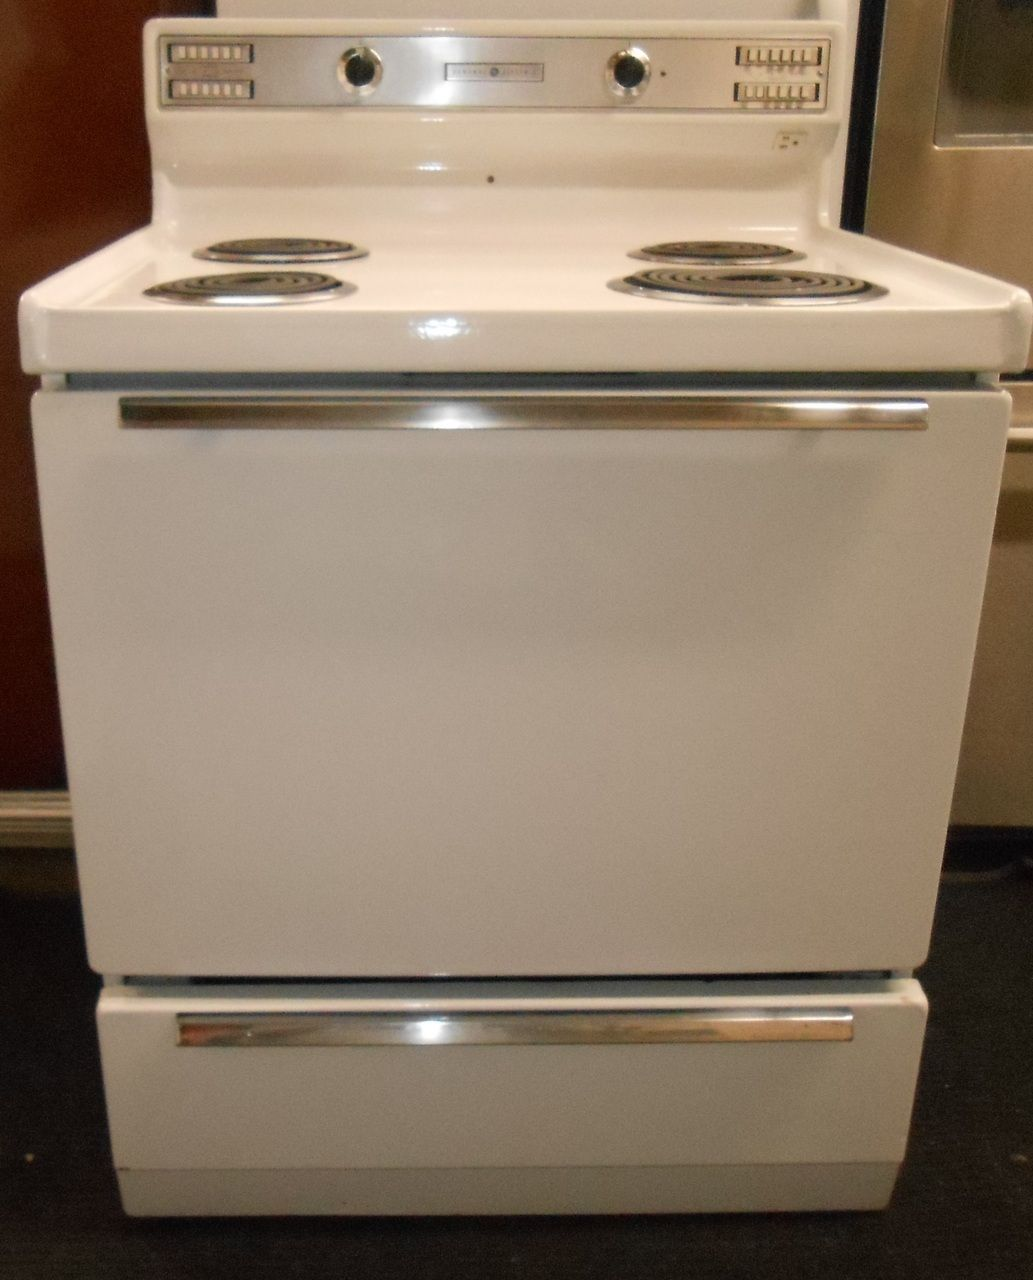 40 Inch Electric Range Part - 16: Appliance City - VINTAGE GE ELECTRIC RANGE 30 INCH COIL BURNERS 3 SMALL 1  LARGE PUSH